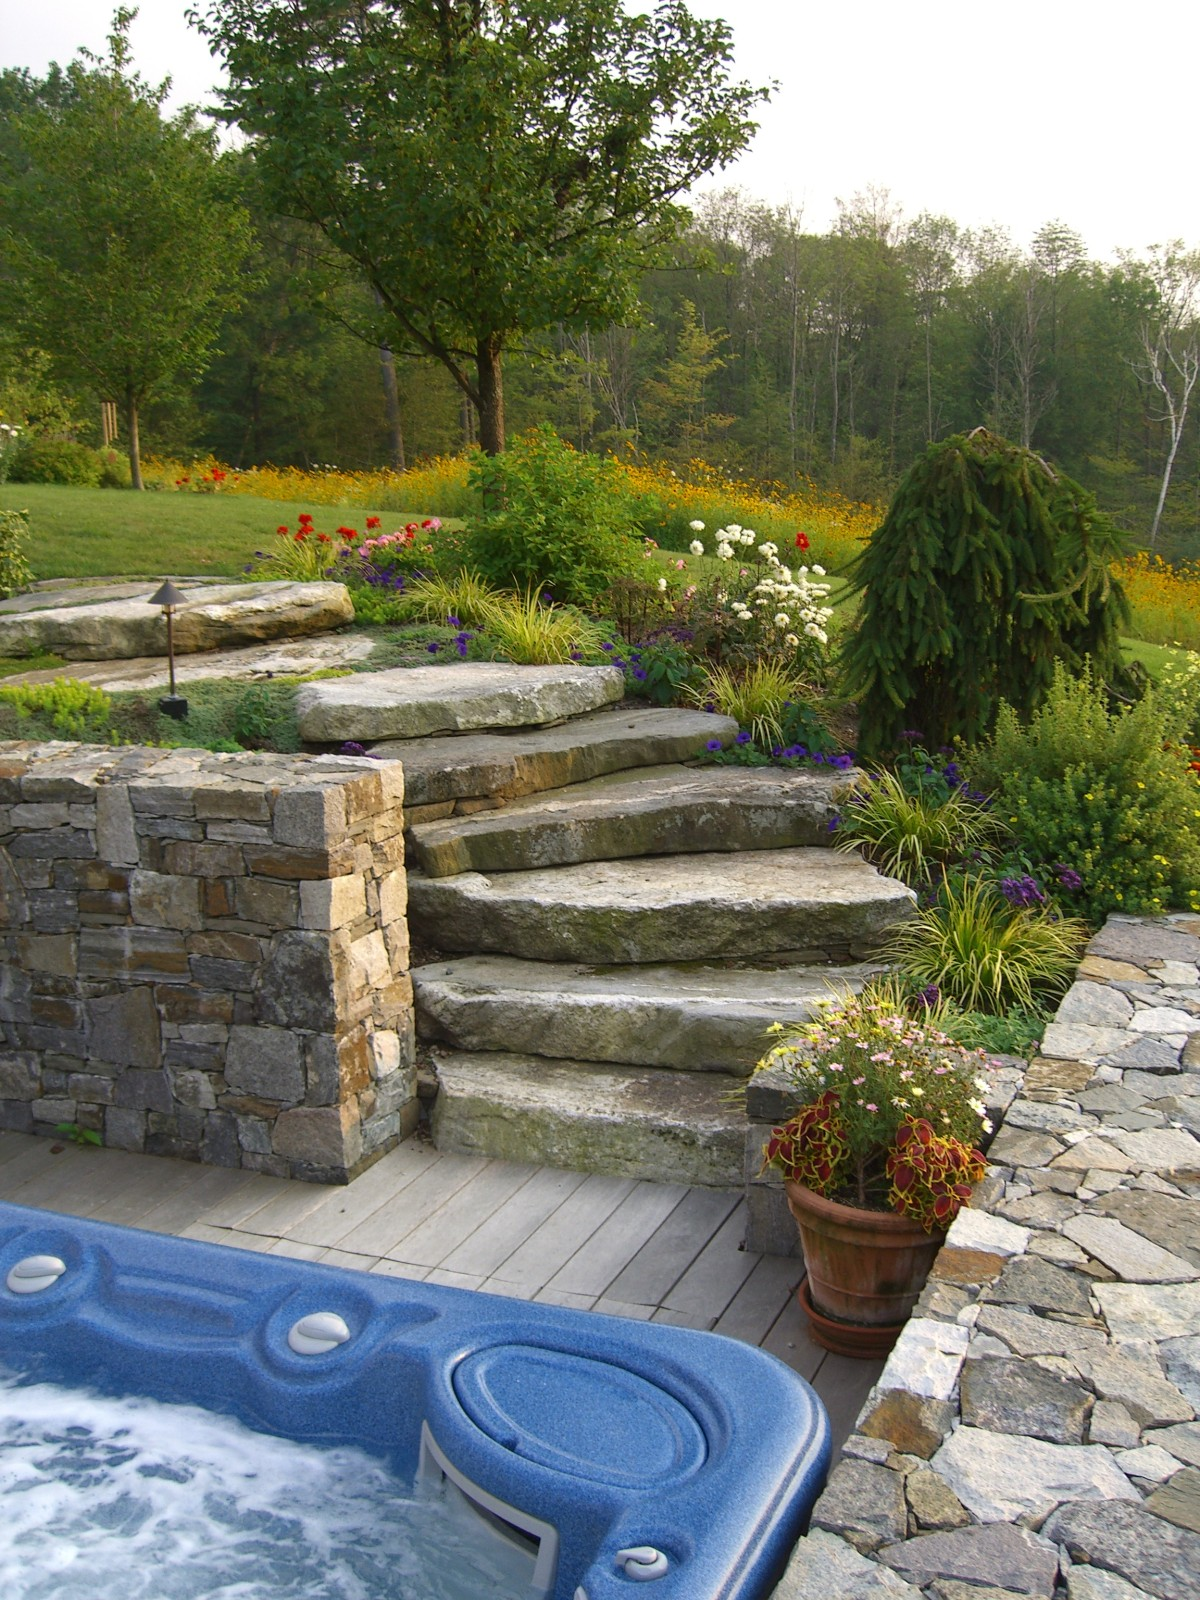 Alford hot tub & garden w granite steps and stone walls